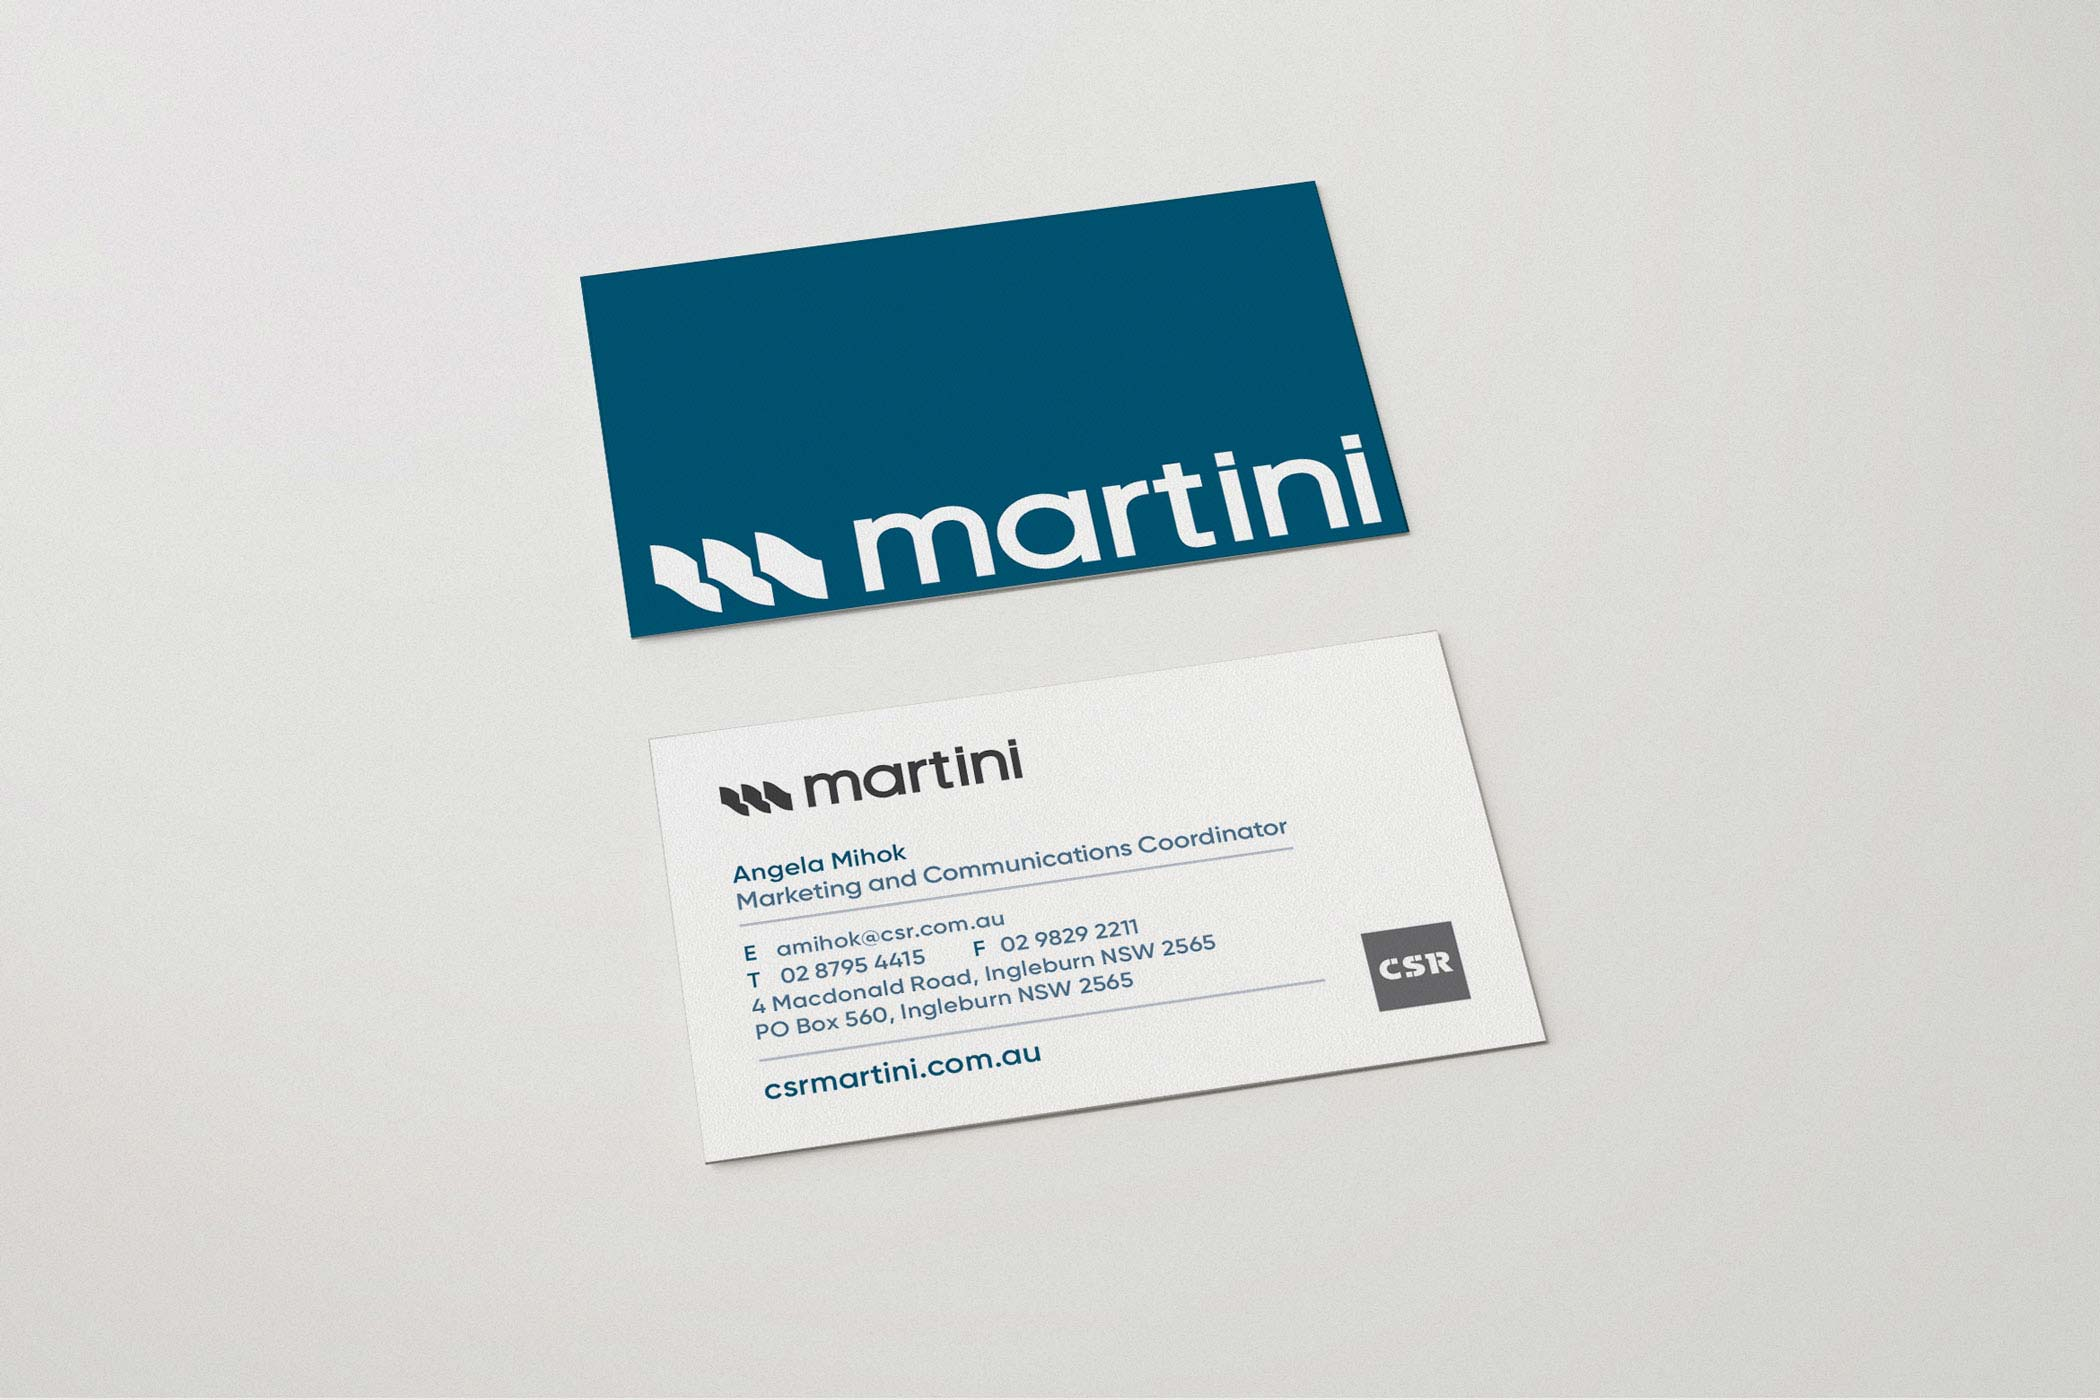 CSR Martini Rebrand by Your One and Only